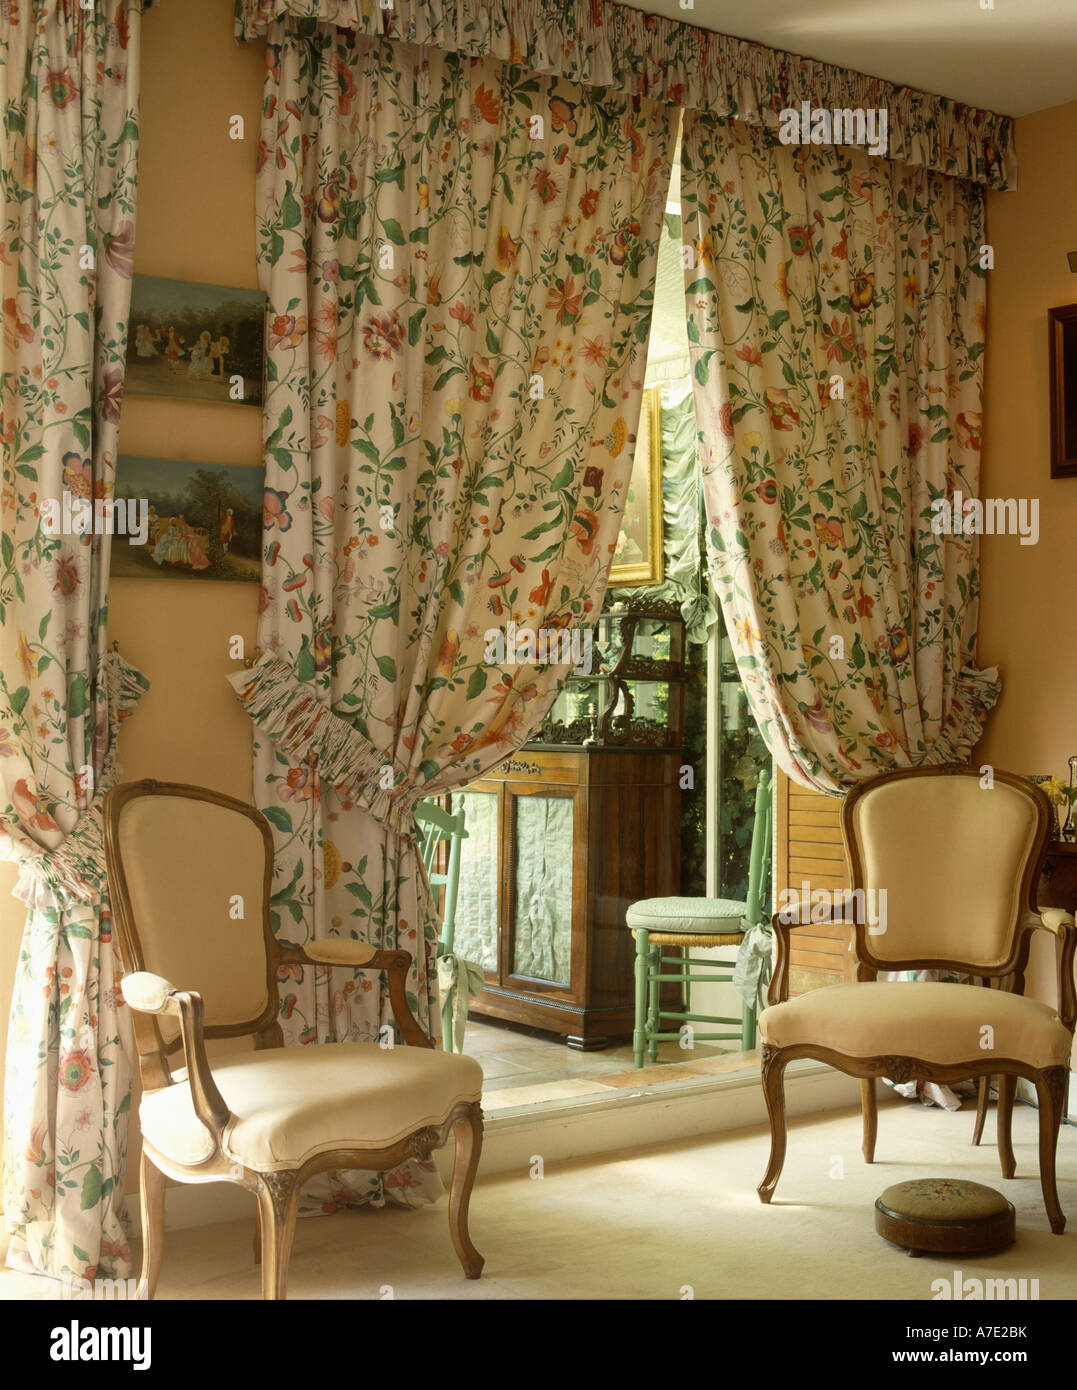 Cream Chairs In Front Of Floral Patterned Drapes At Doorway To Kitchen